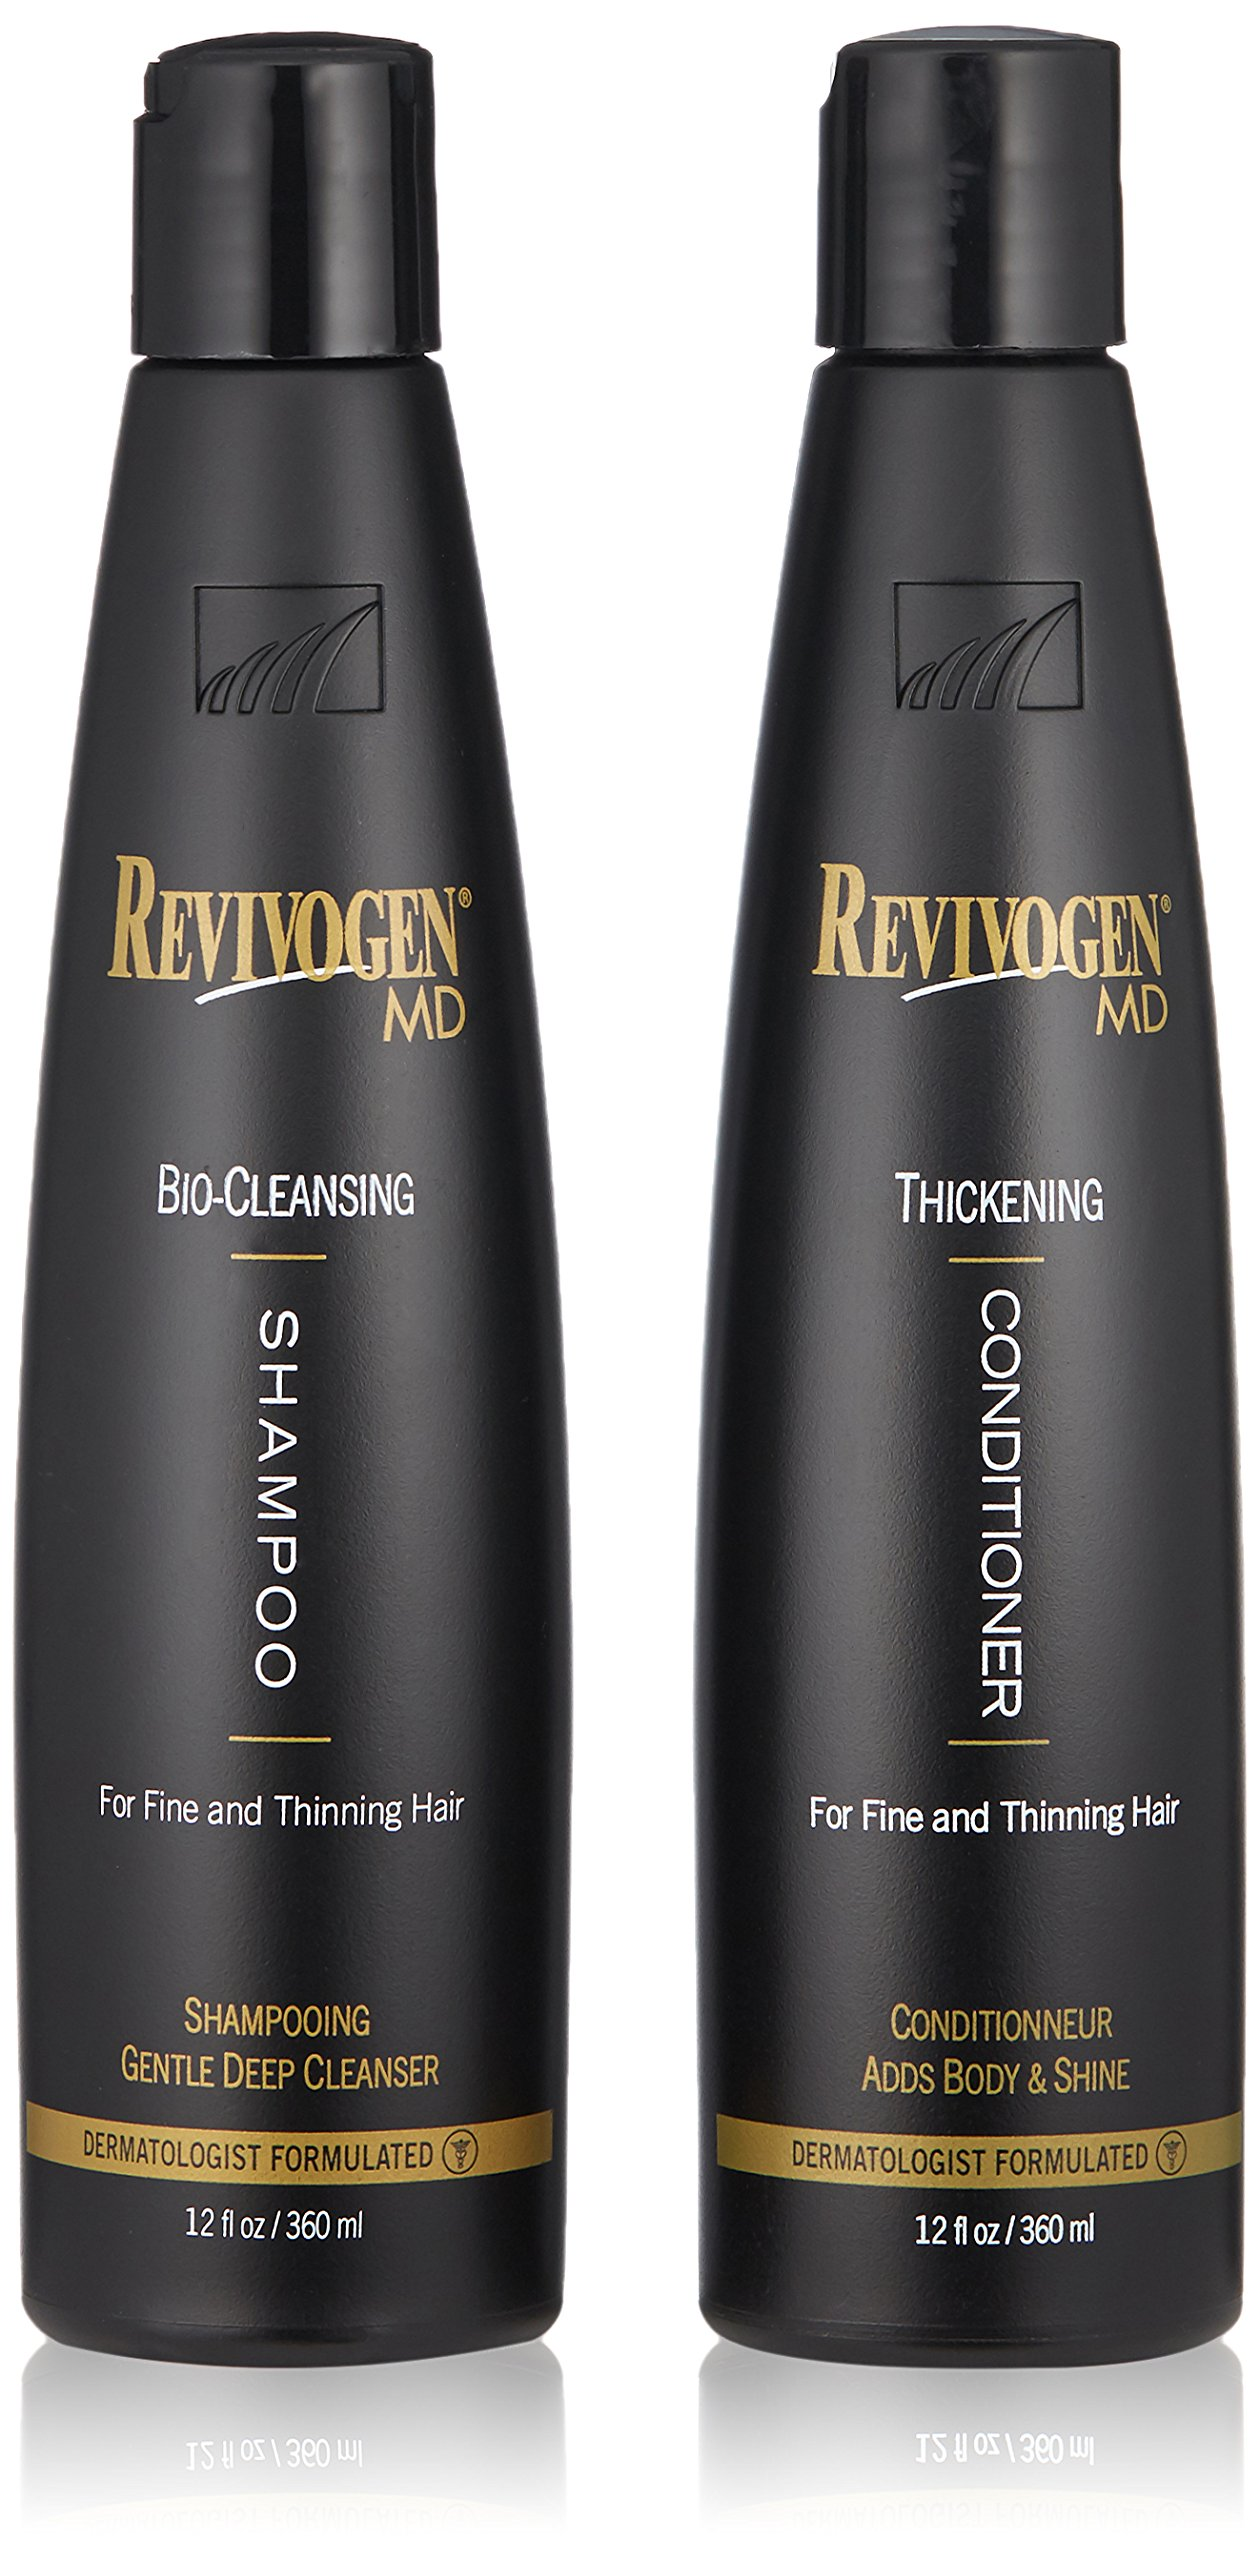 Revivogen MD Bio Cleansing Shampoo & Thickening Conditioner Duo Set for fine, thinning hair create volume, cleanse DHT, nourish scalp for healthier hair growth & 2 bottles, 12 oz. each by Revivogen MD